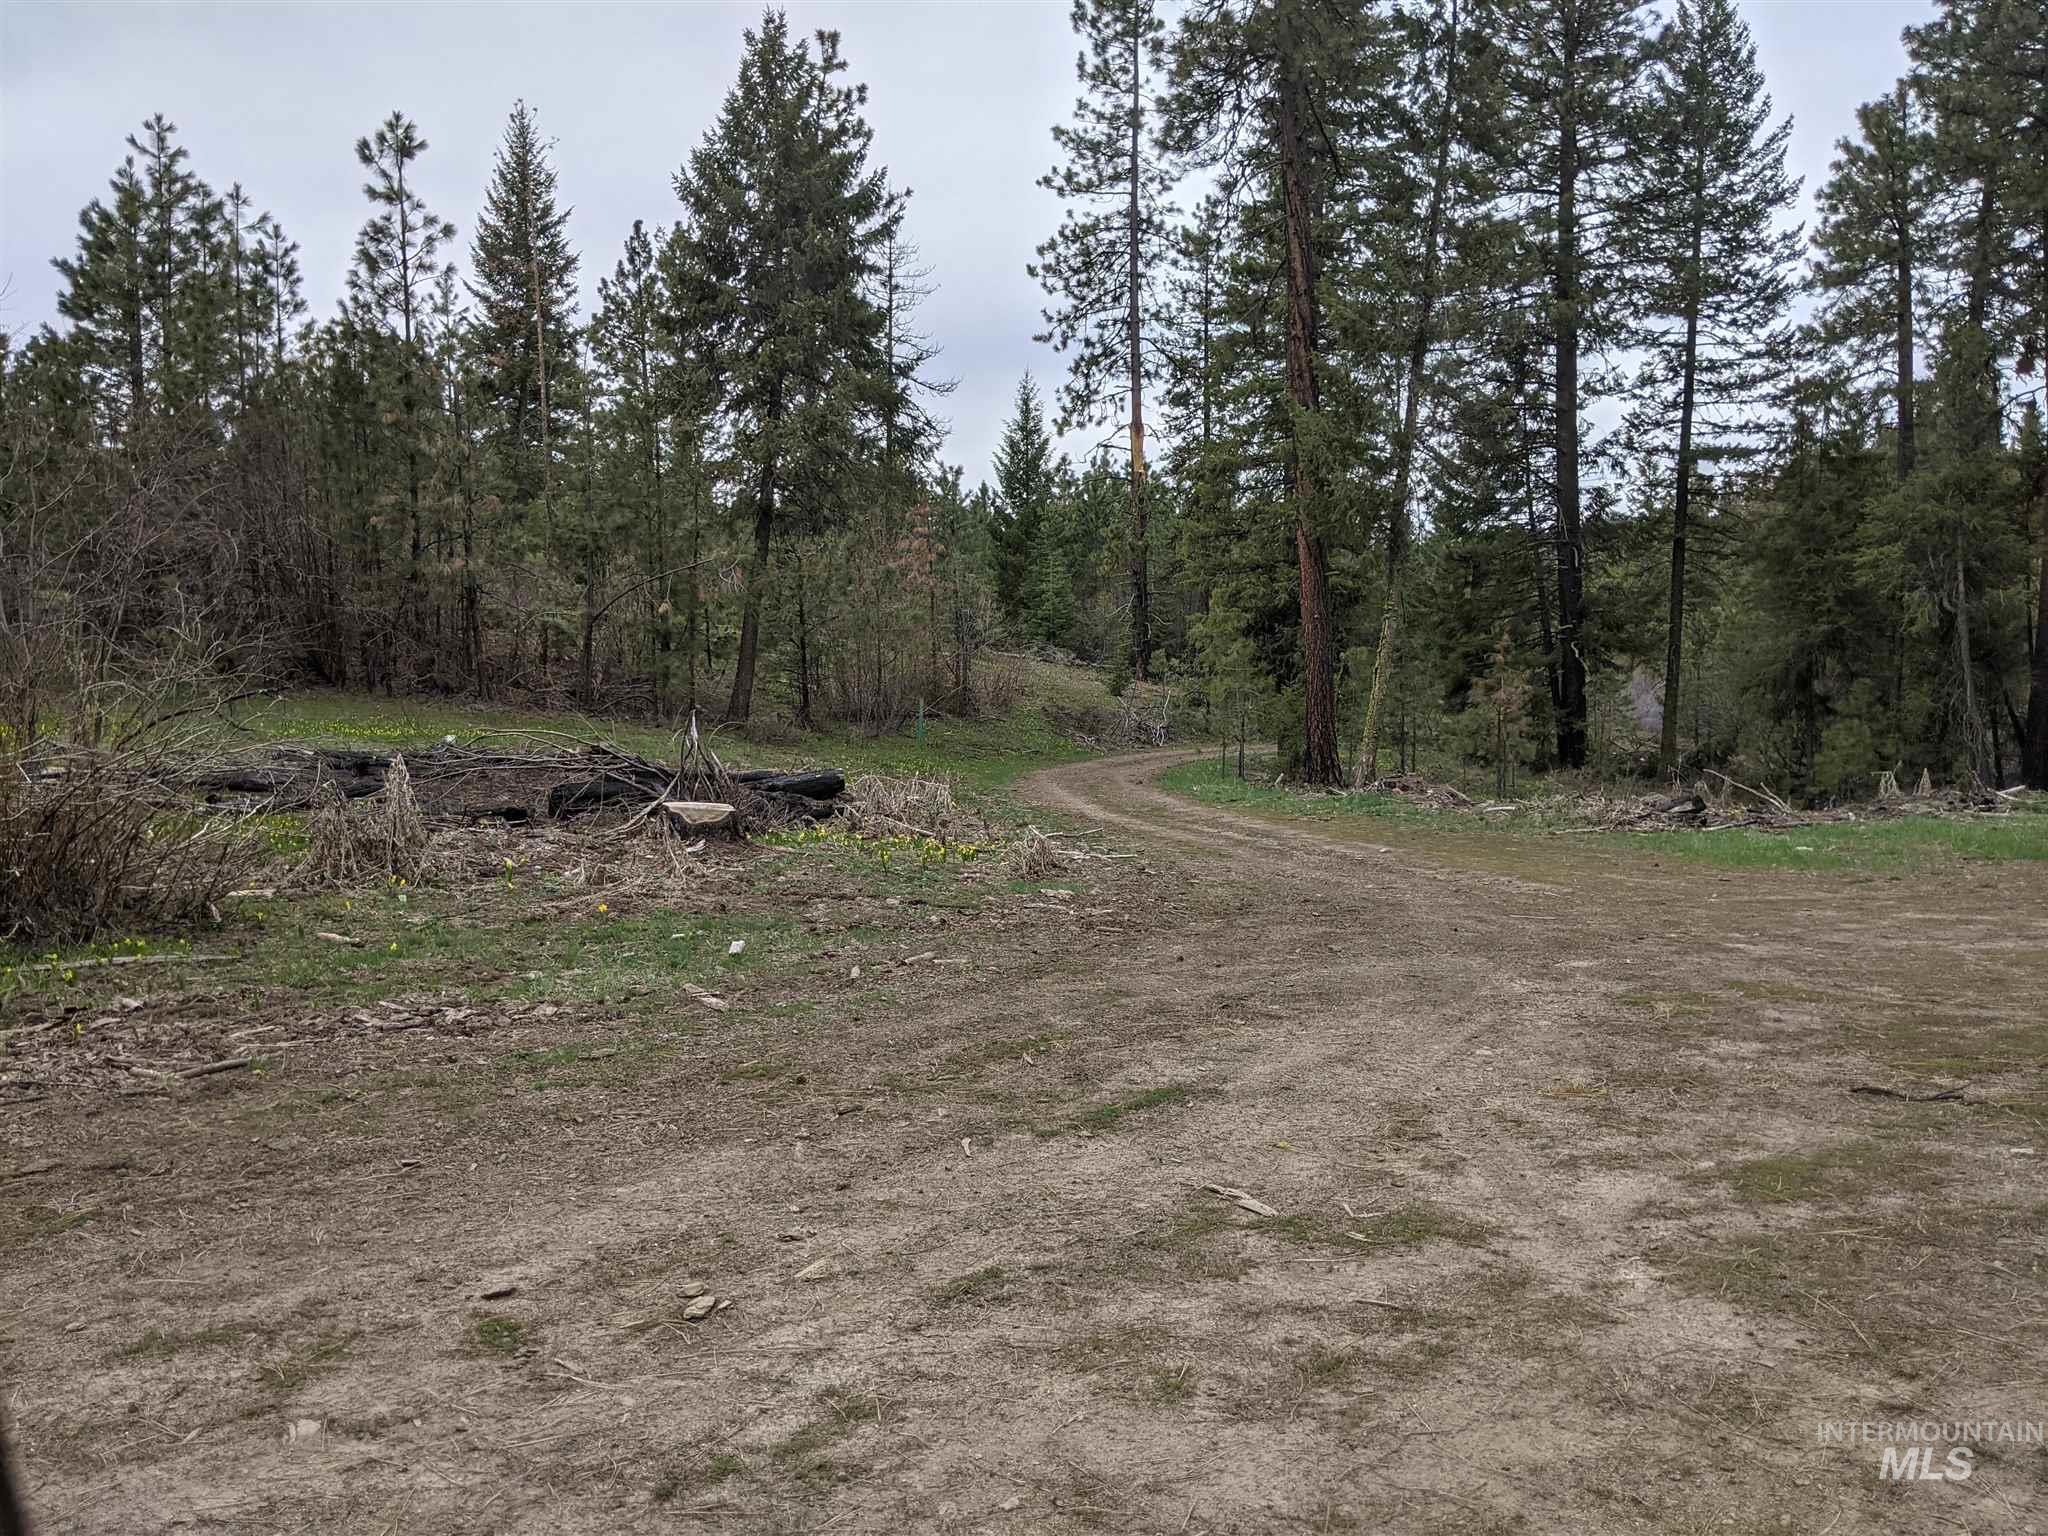 160+/- Acre parcel may be dividable into 40+/- acre parcels. Buyer to determin terms and conditions required to split property if desired.